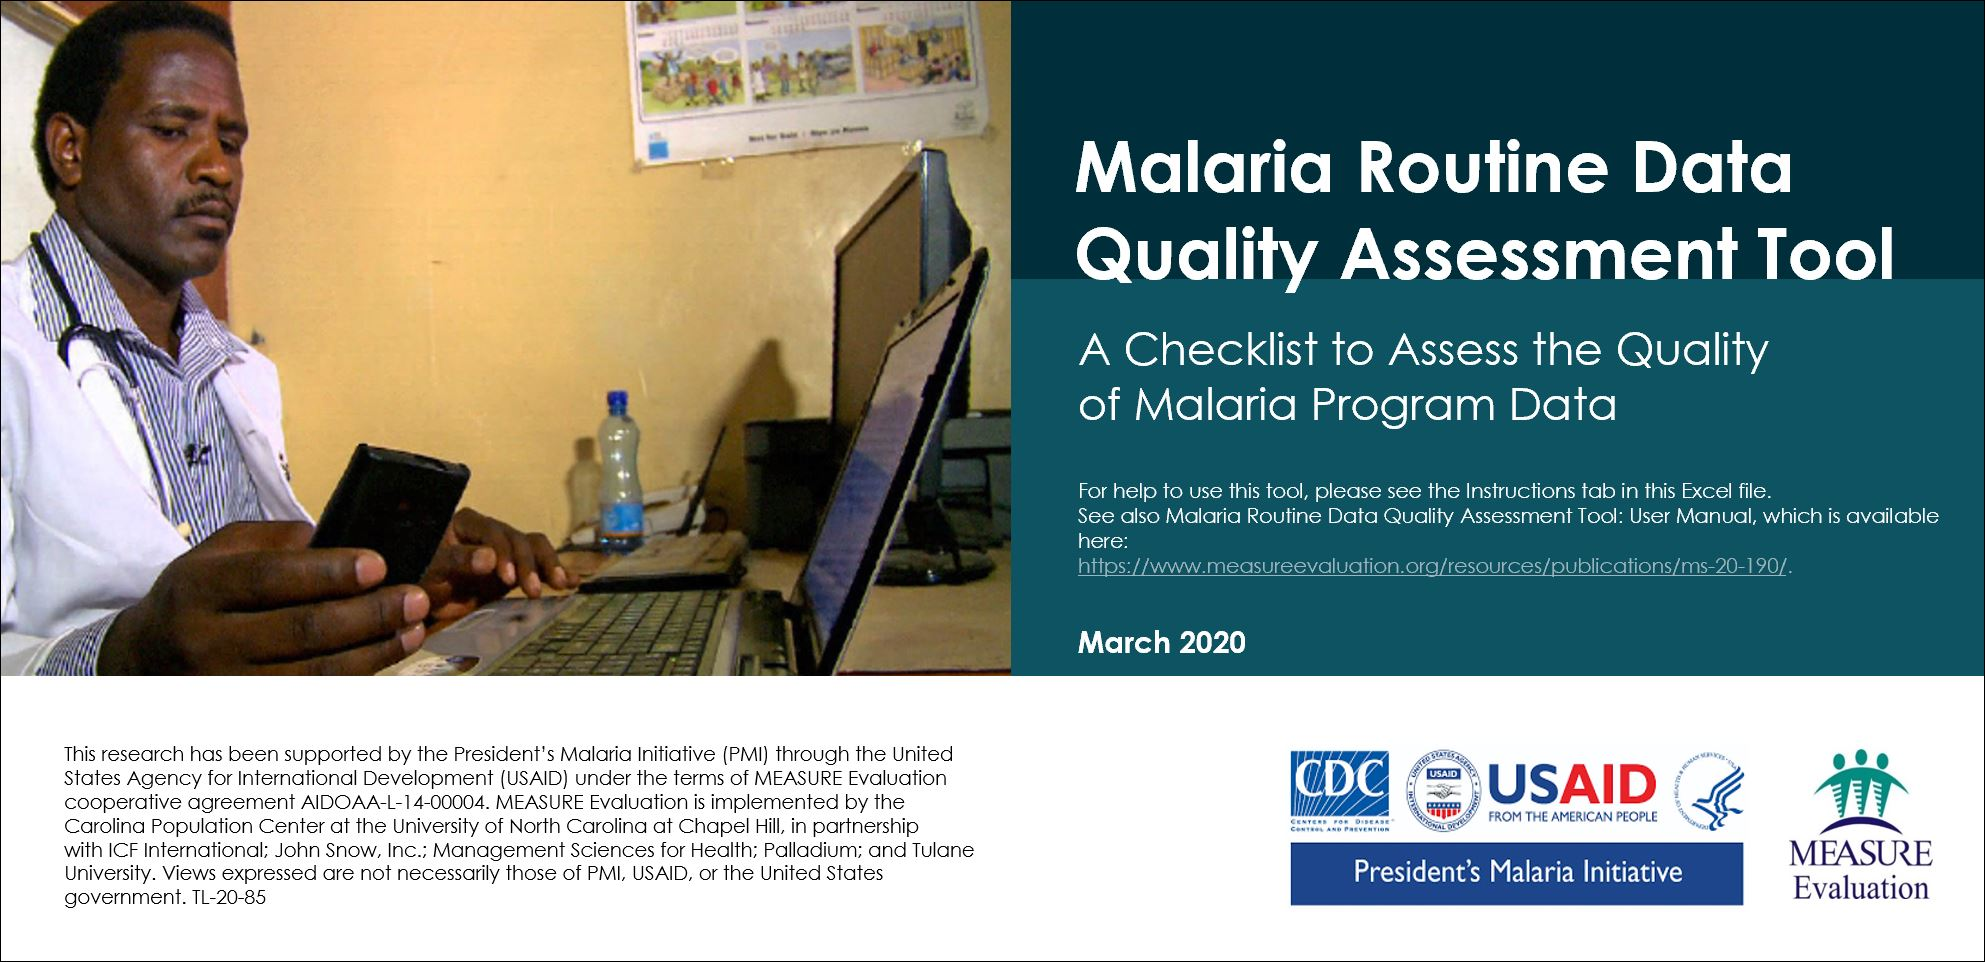 Malaria Routine Data Quality Assessment Tool: A Checklist to Assess the Quality of Malaria Program Data